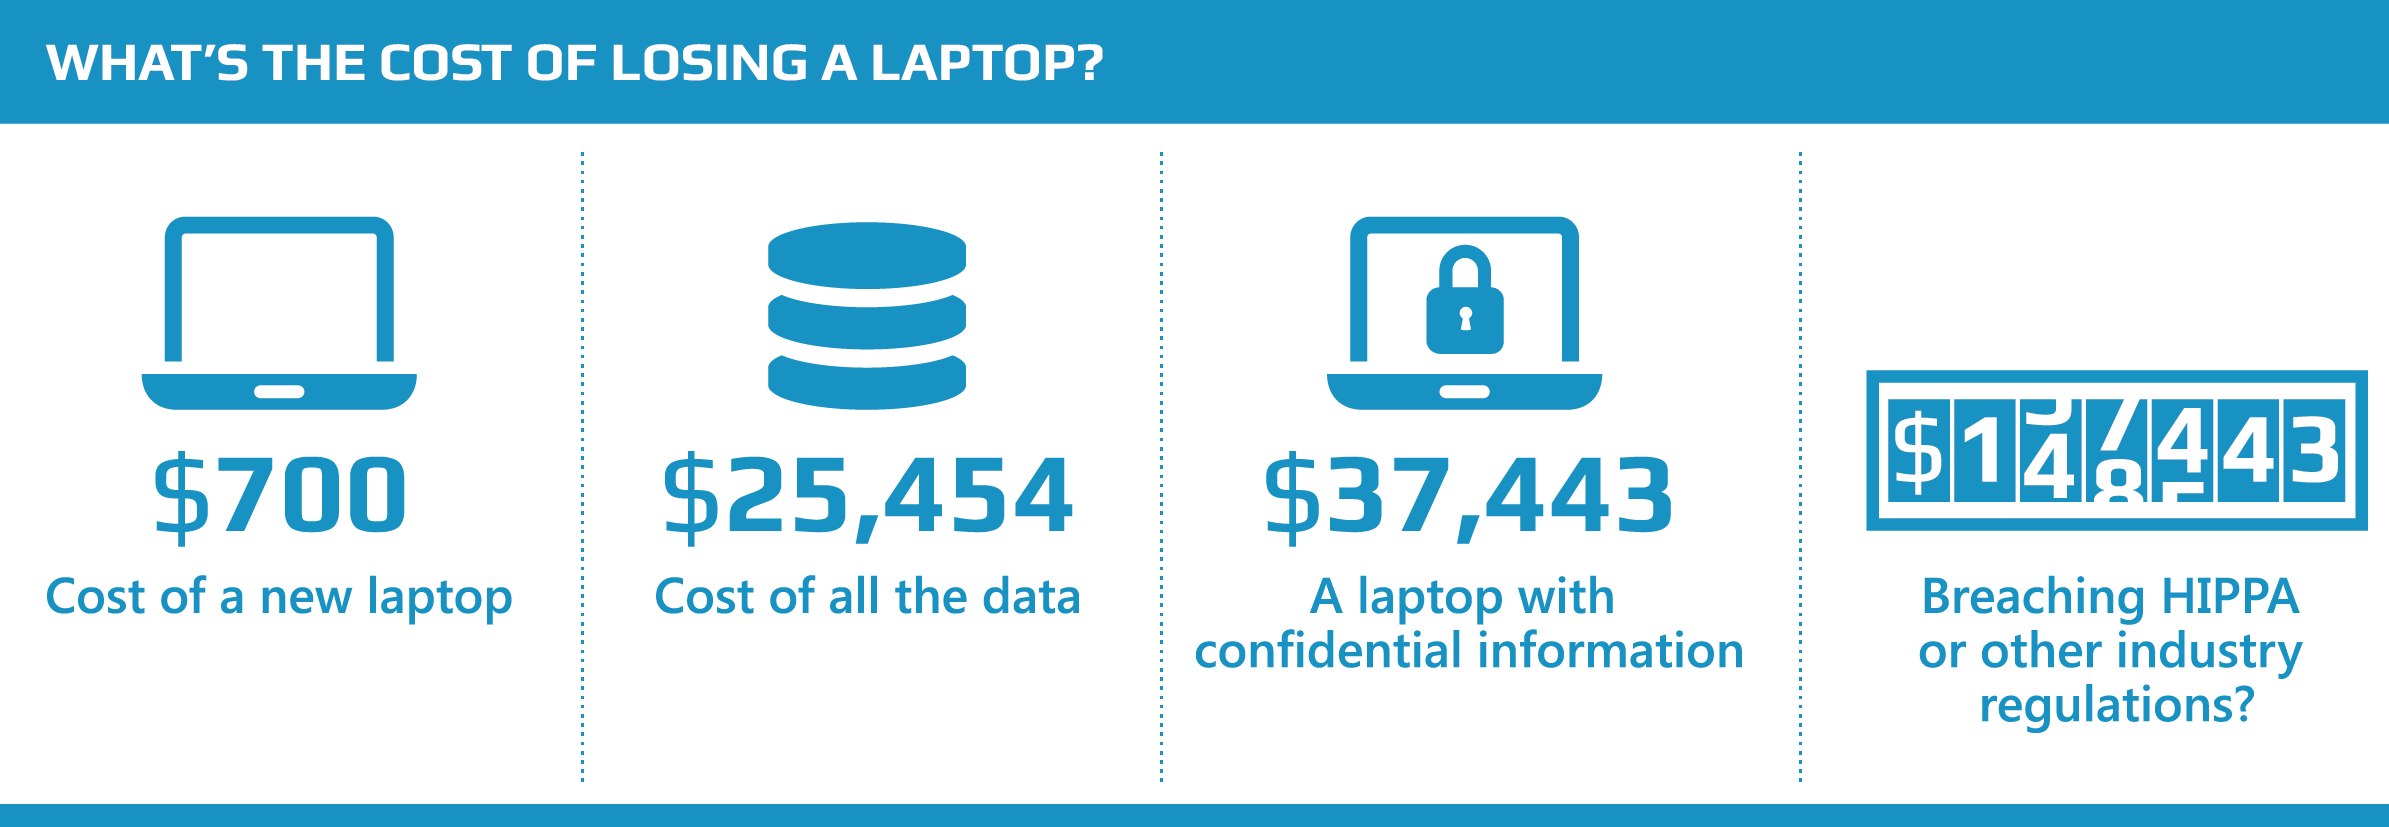 Cost of a Lost Laptop